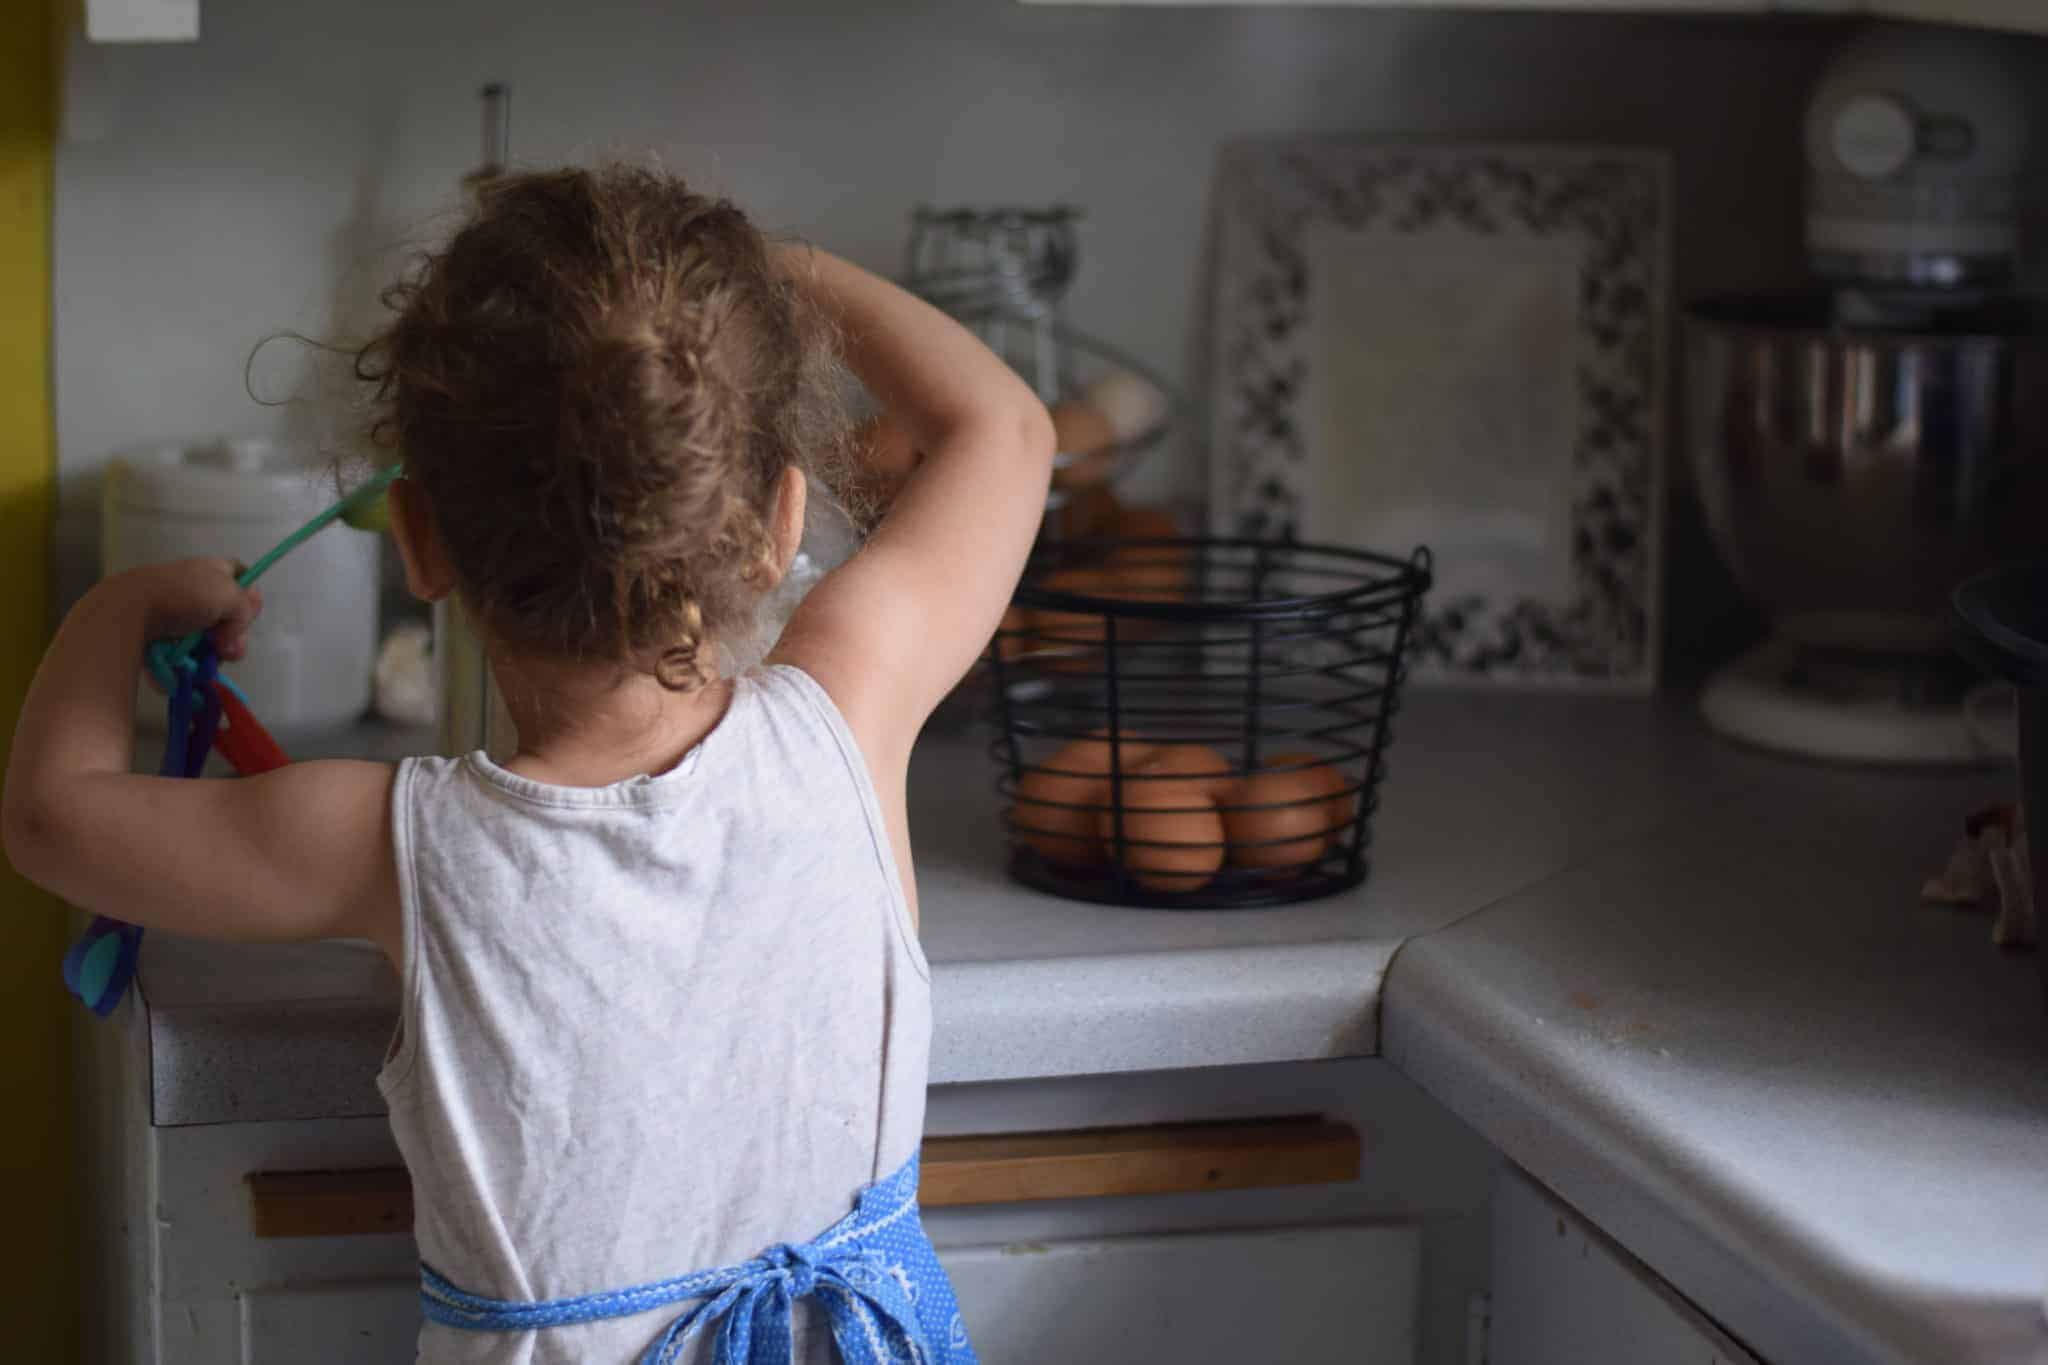 little girl measuring flour in a kitchen